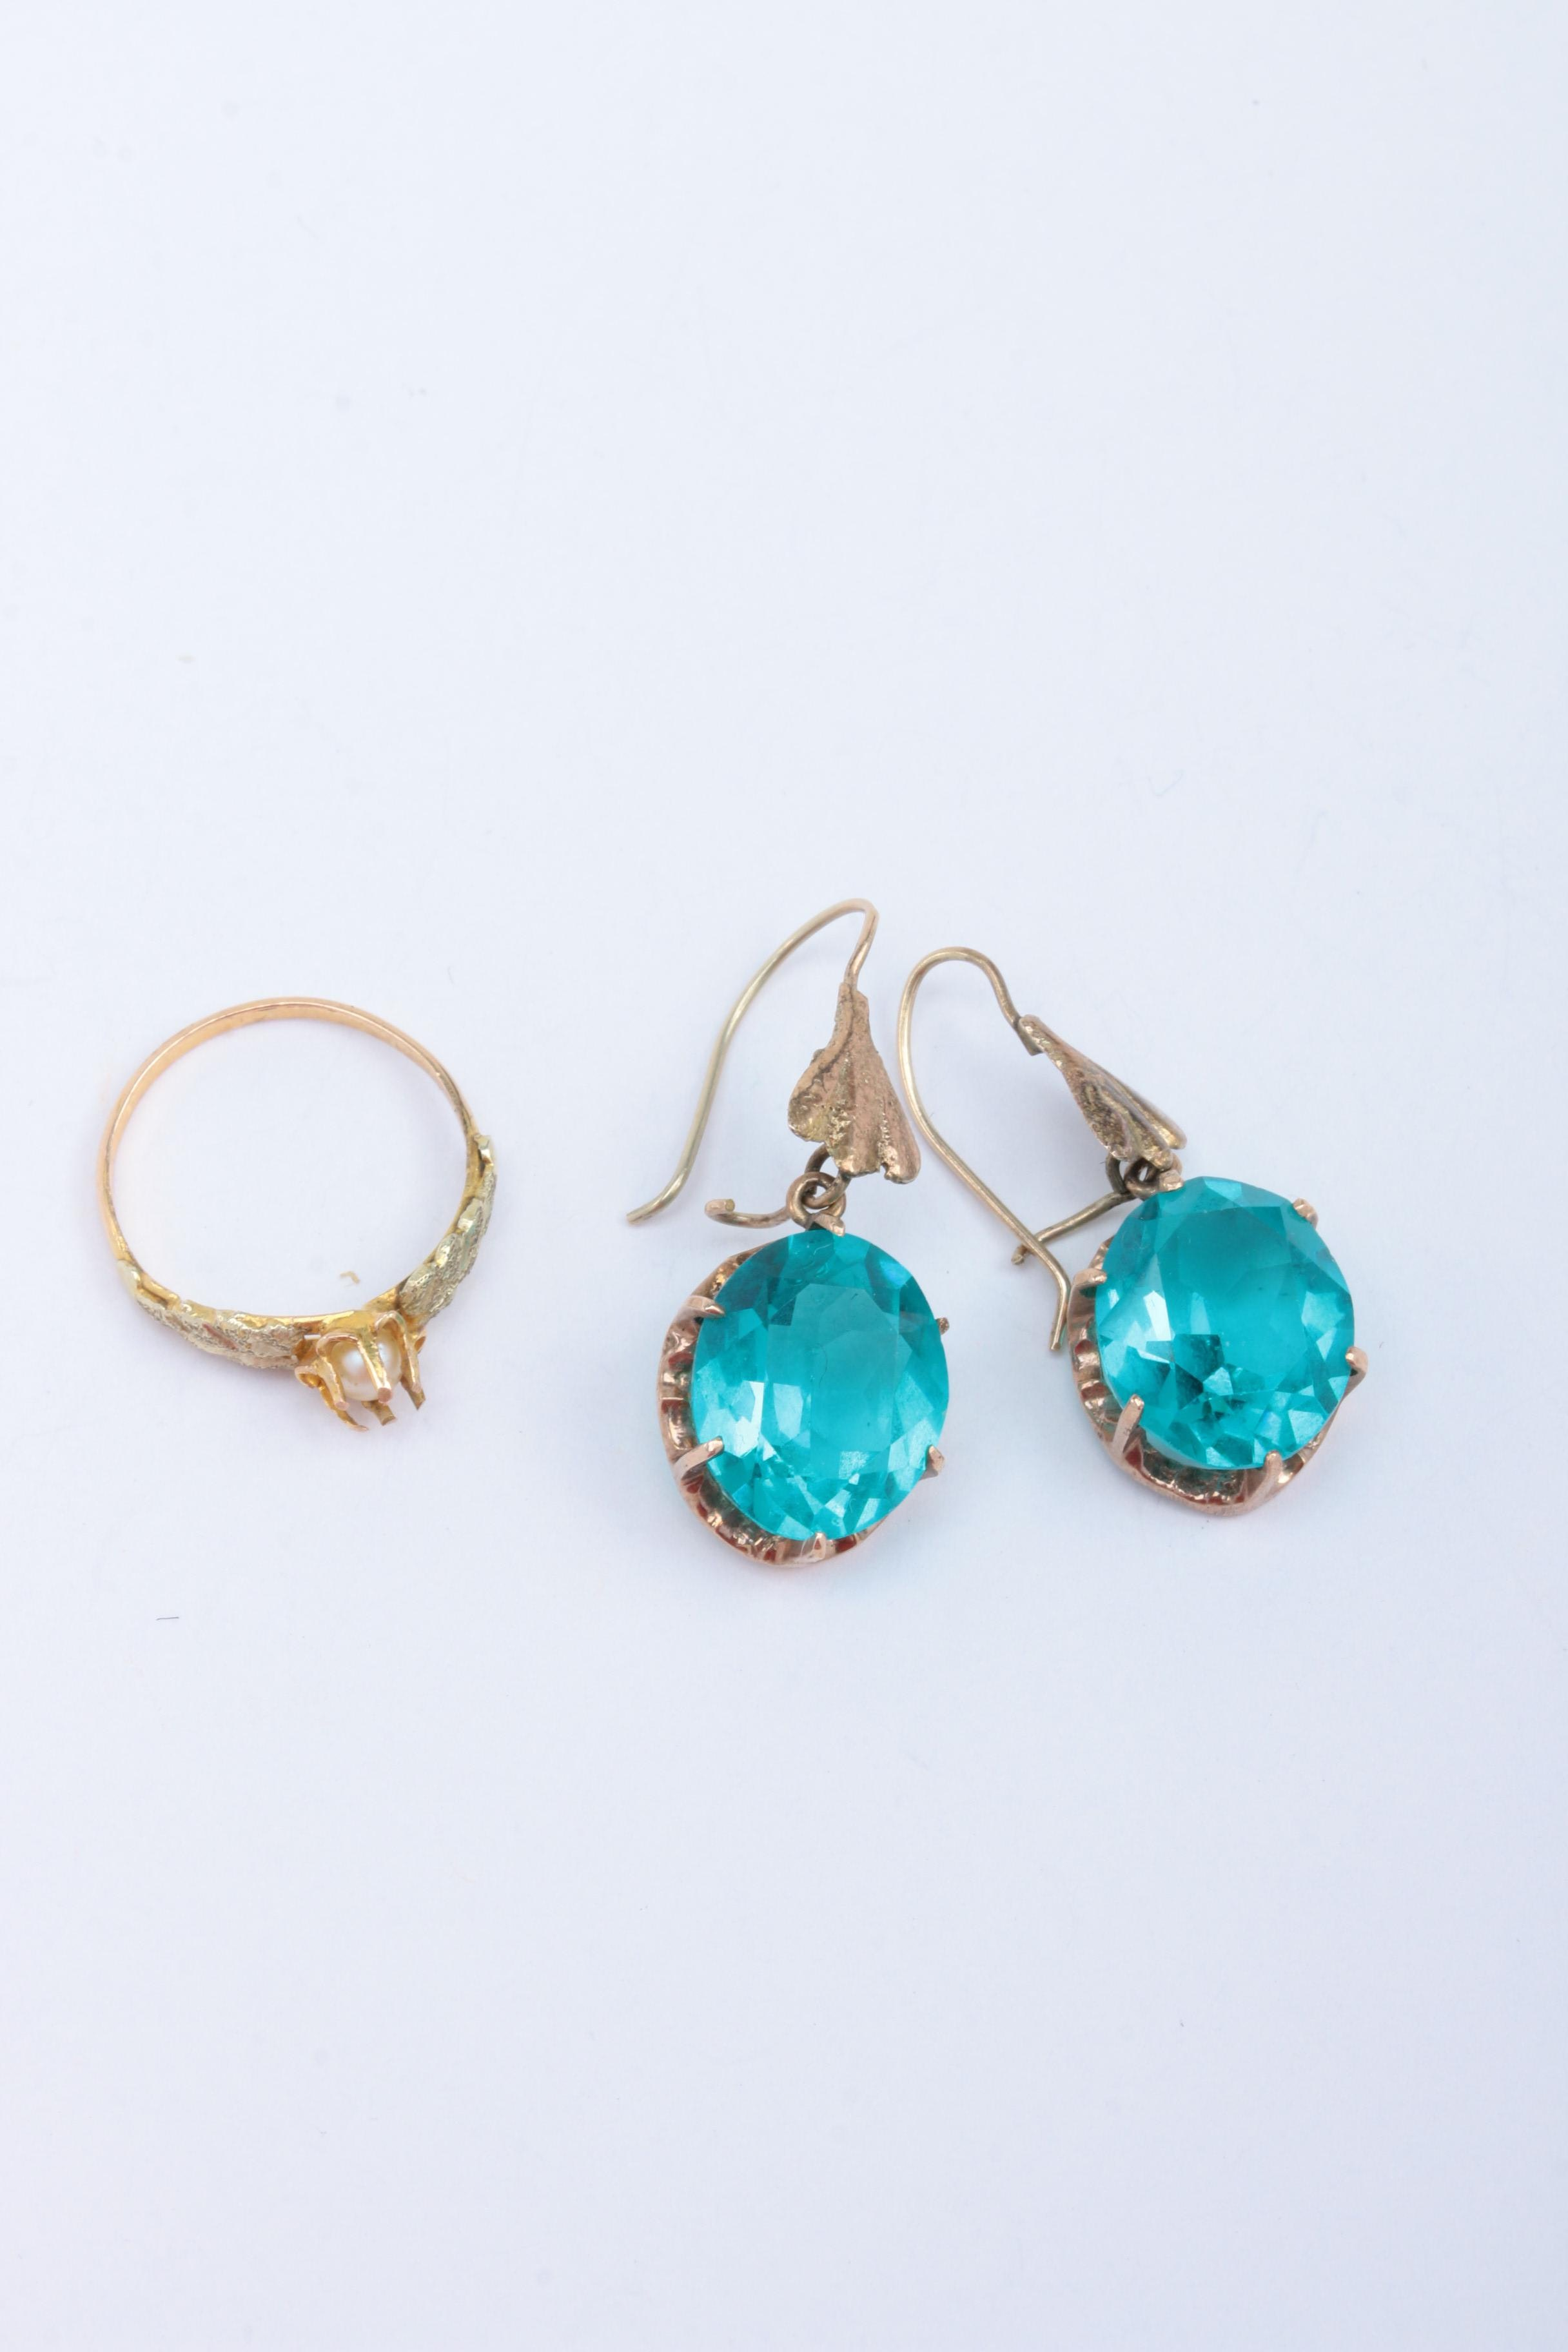 10K Yellow Gold Ring and Earrings